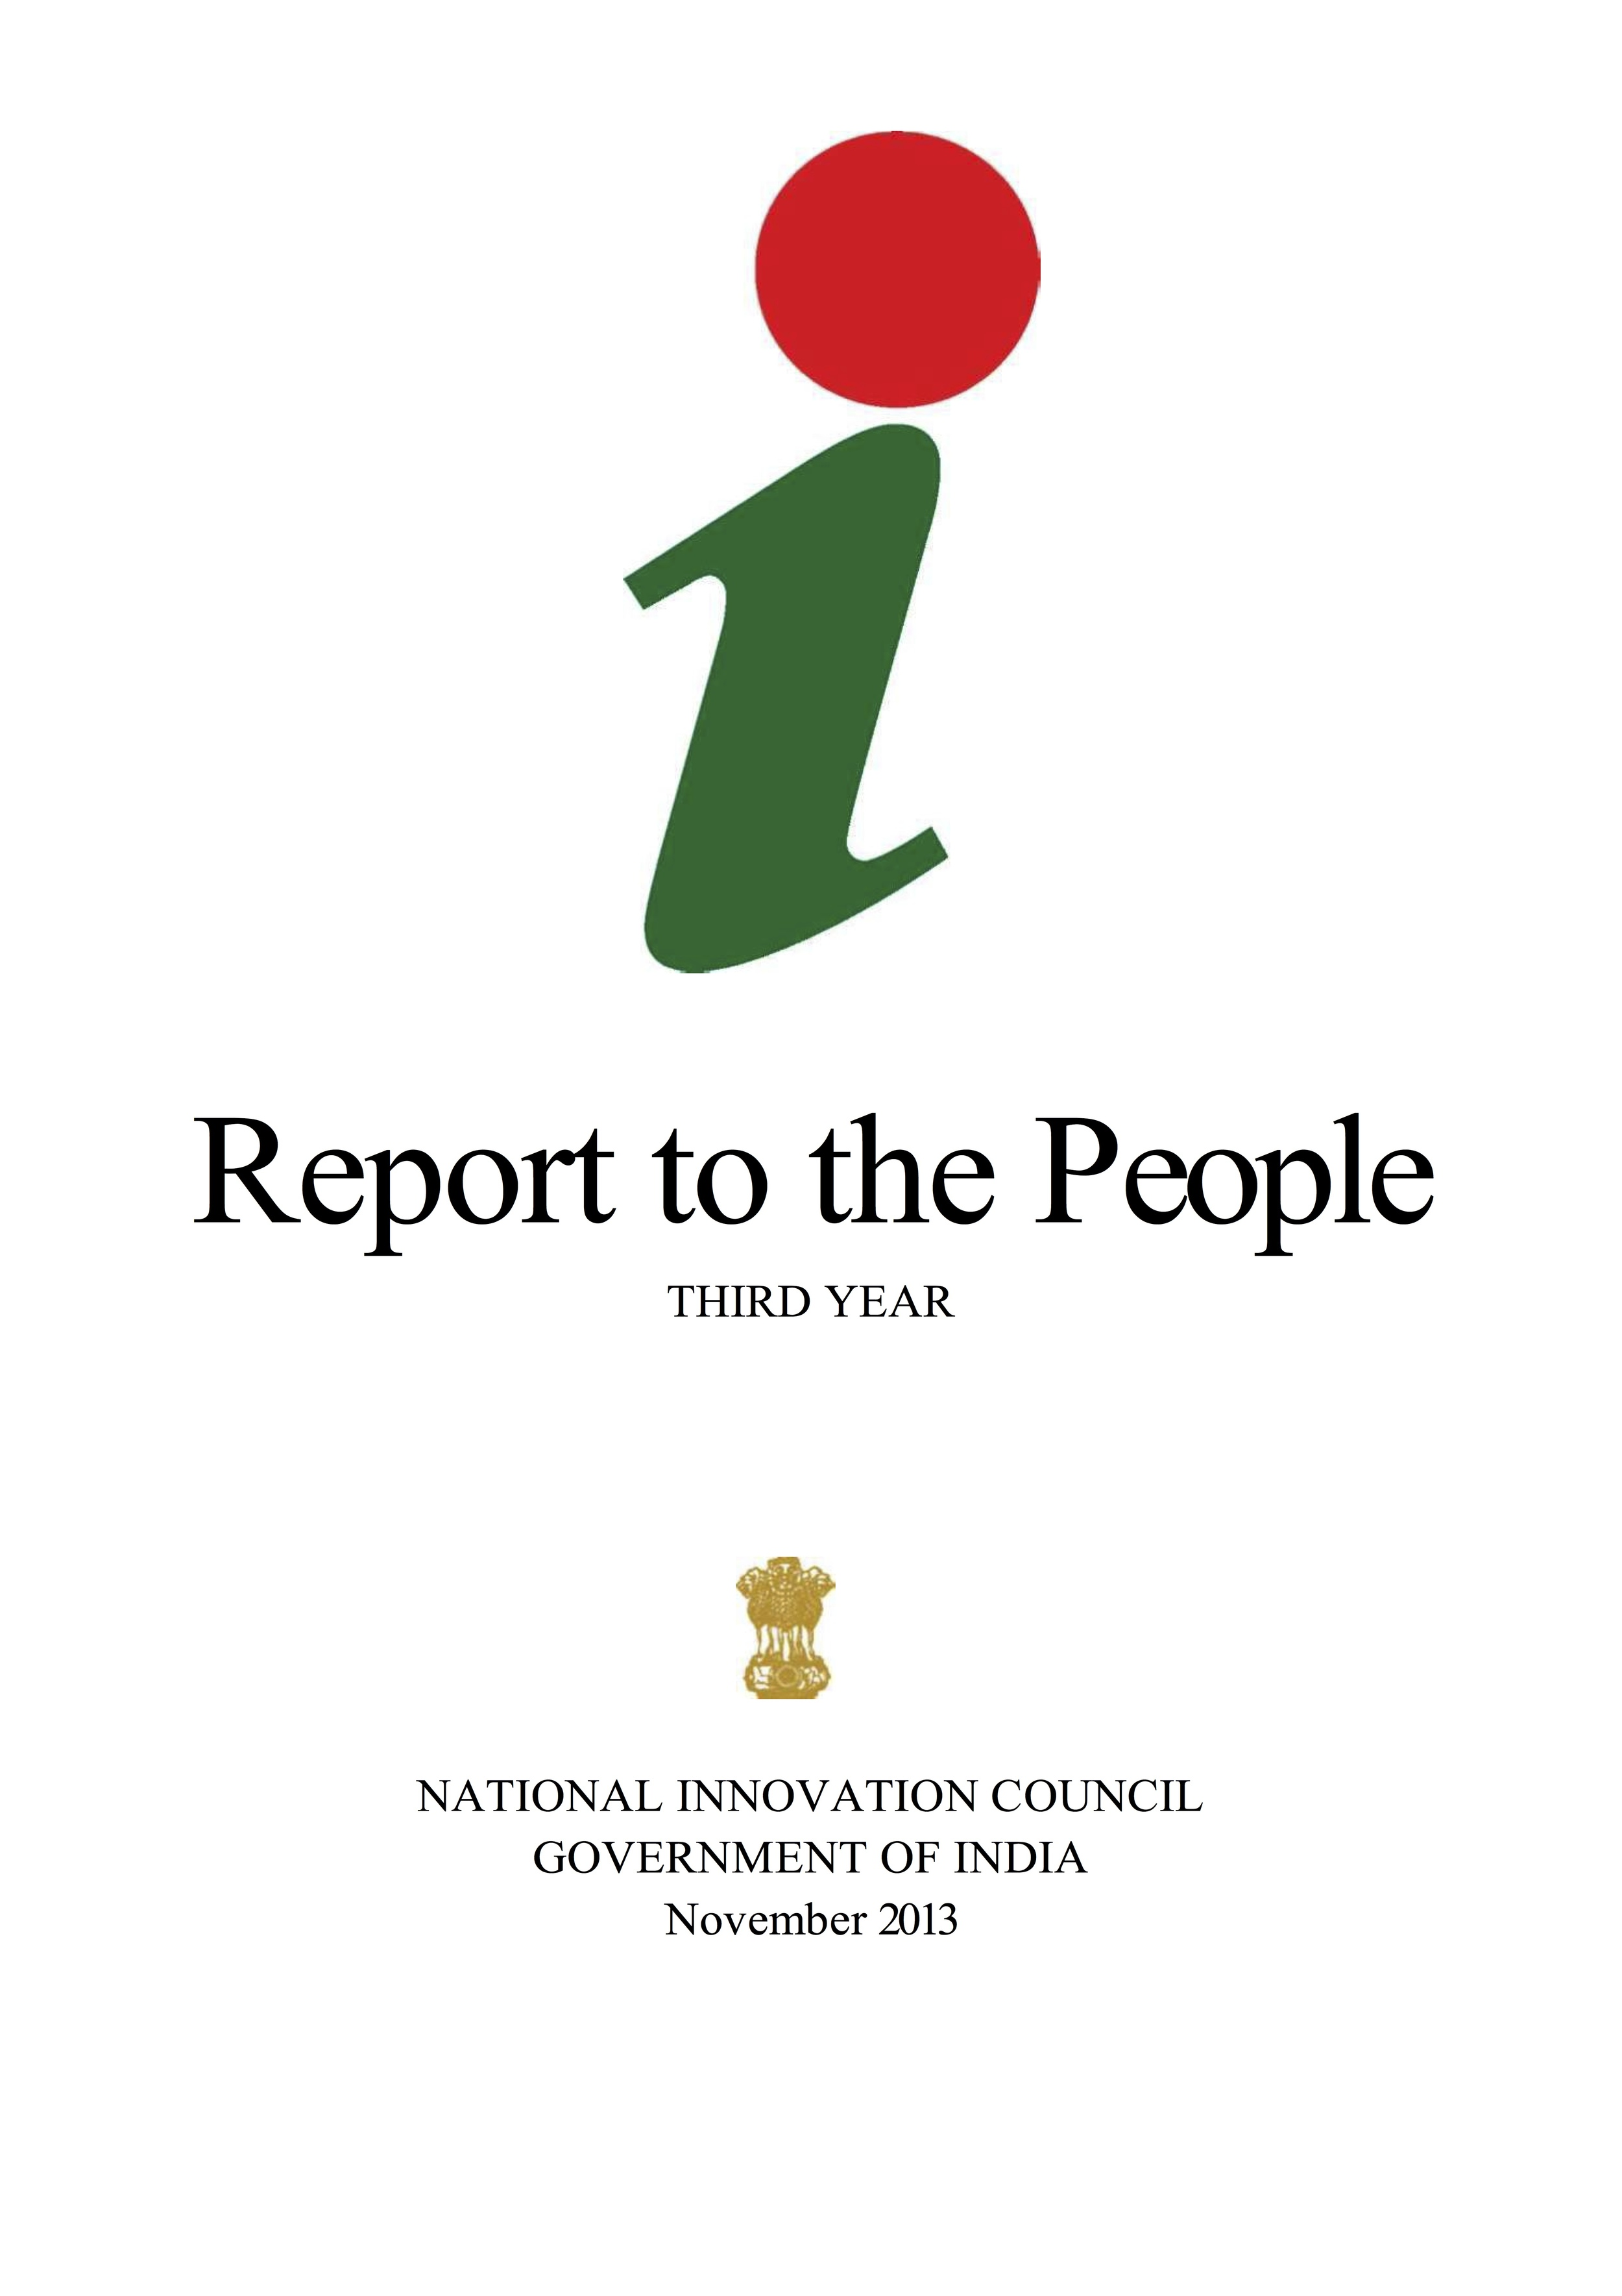 Click here to read the National Innovation Council's Report to the People, 2013